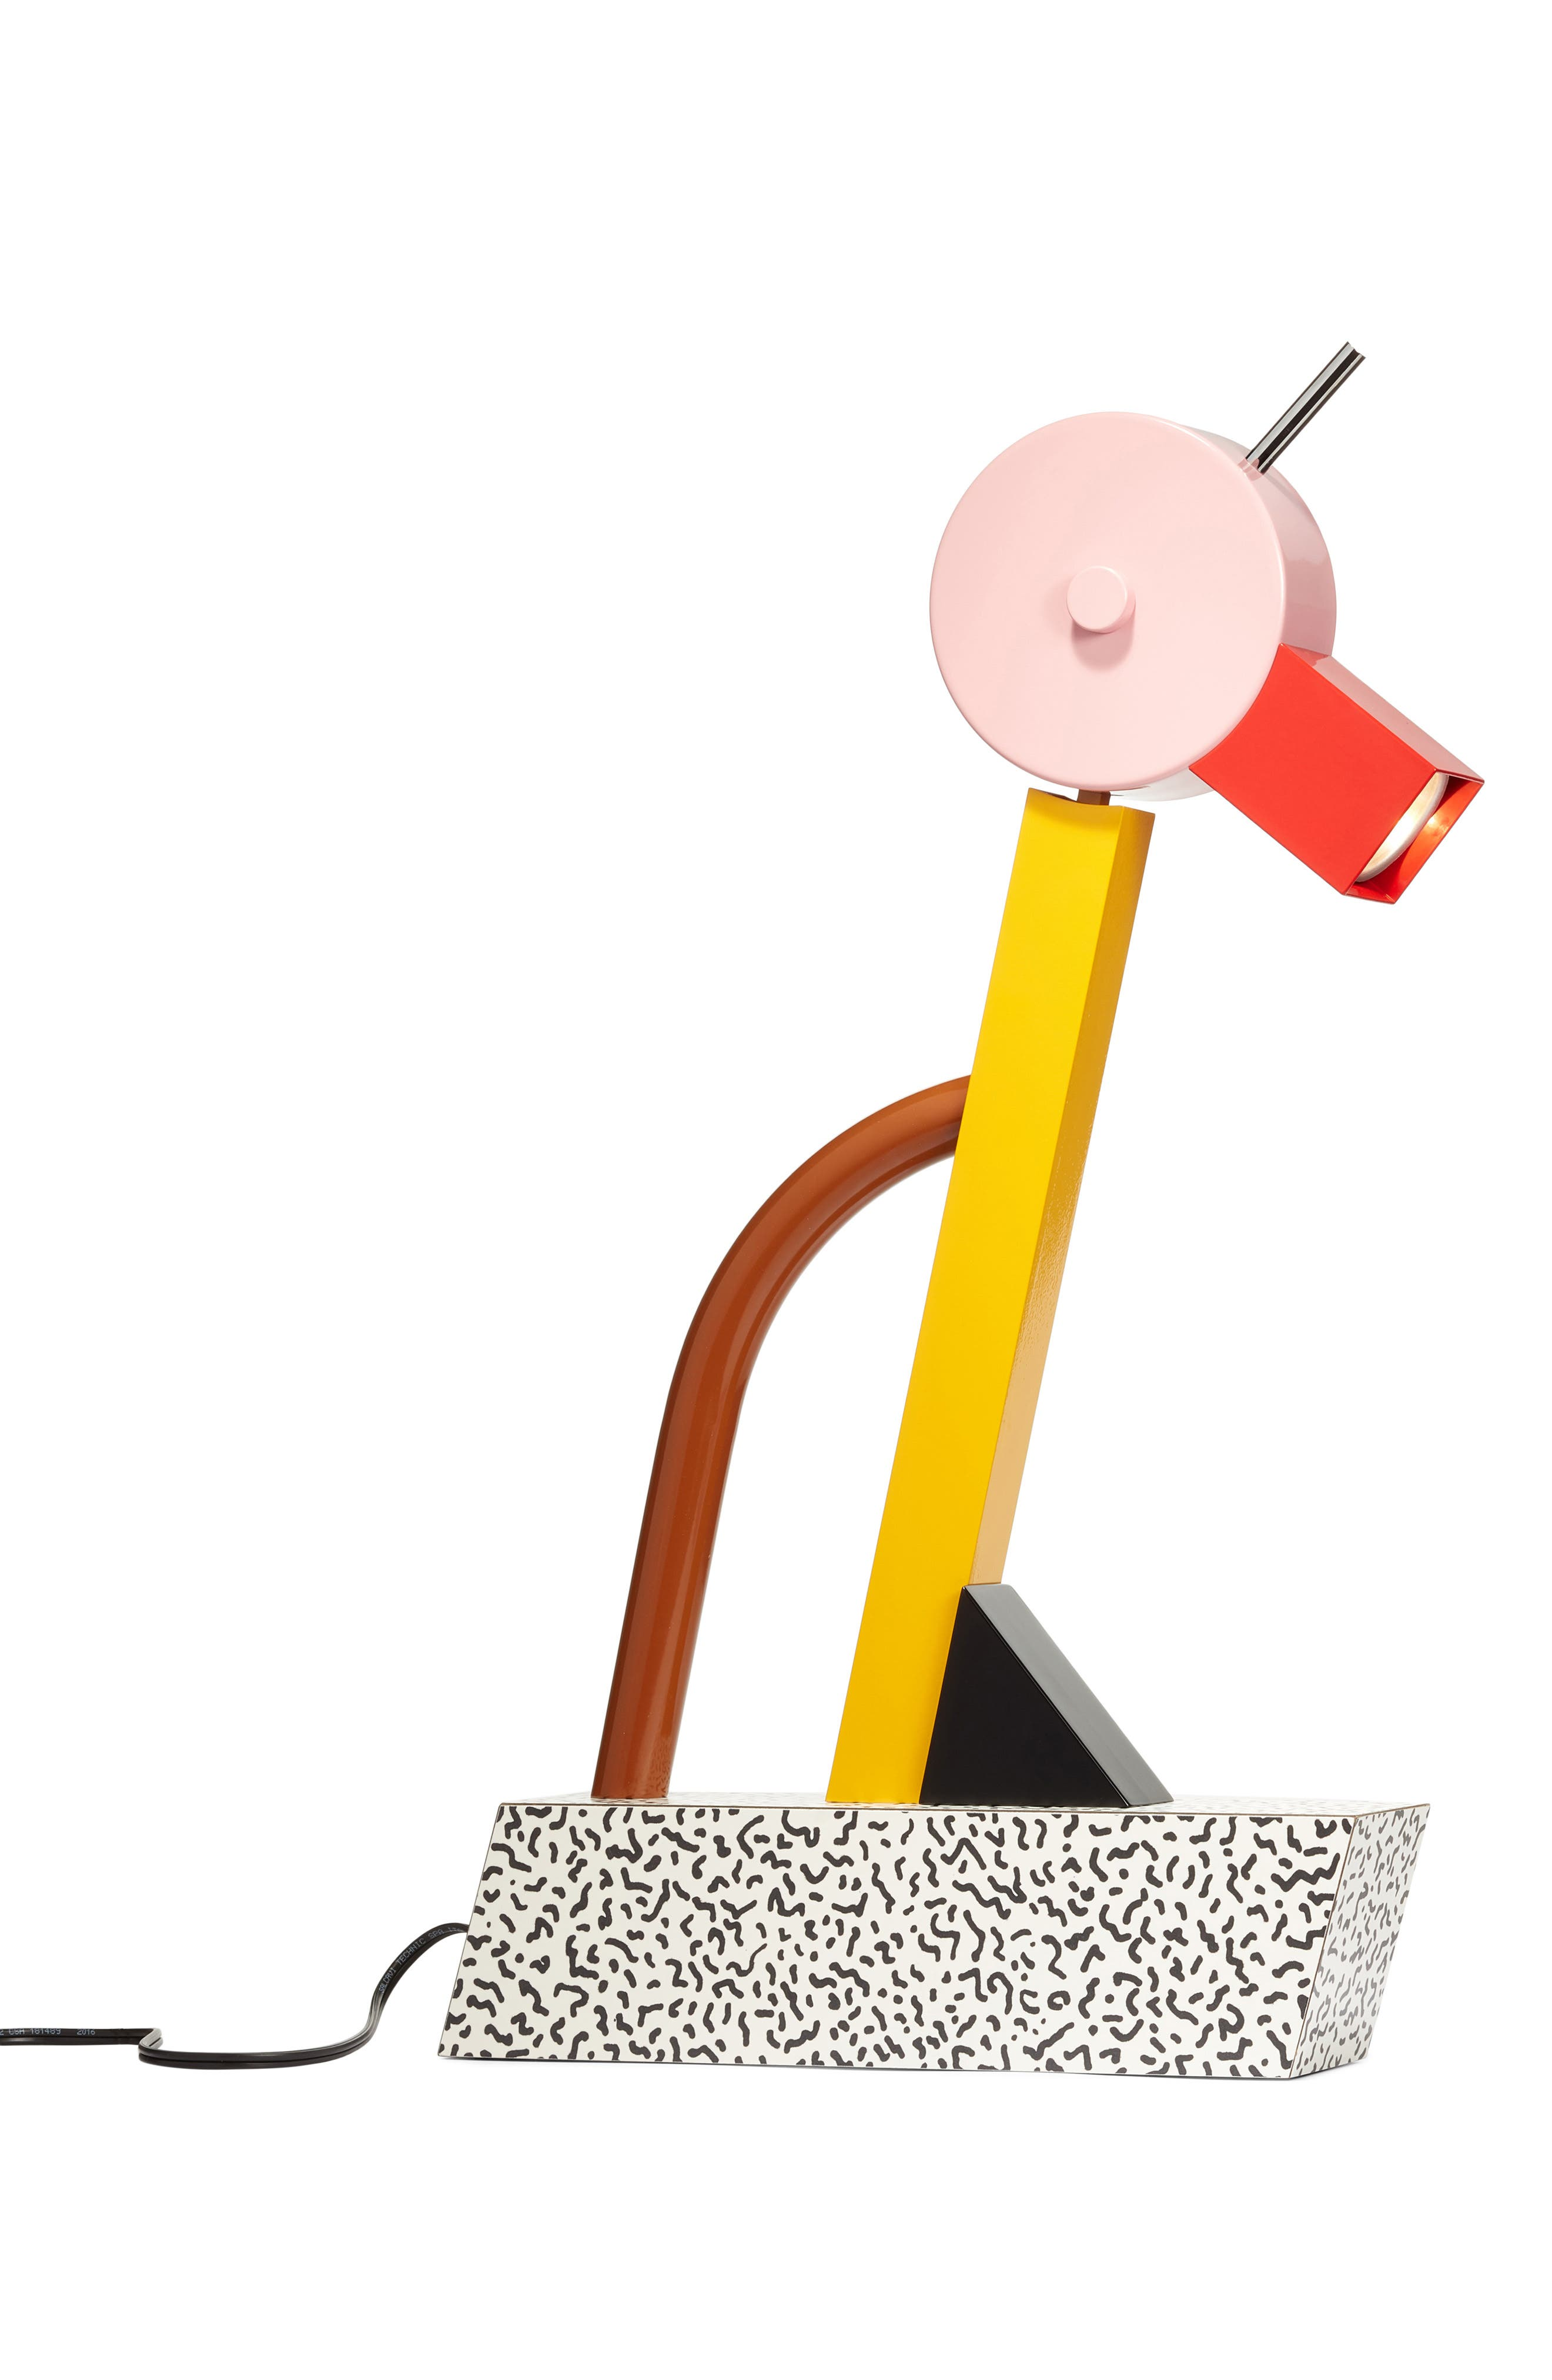 MEMPHIS Milano Tahiti Lamp,                         Main,                         color, MULTI